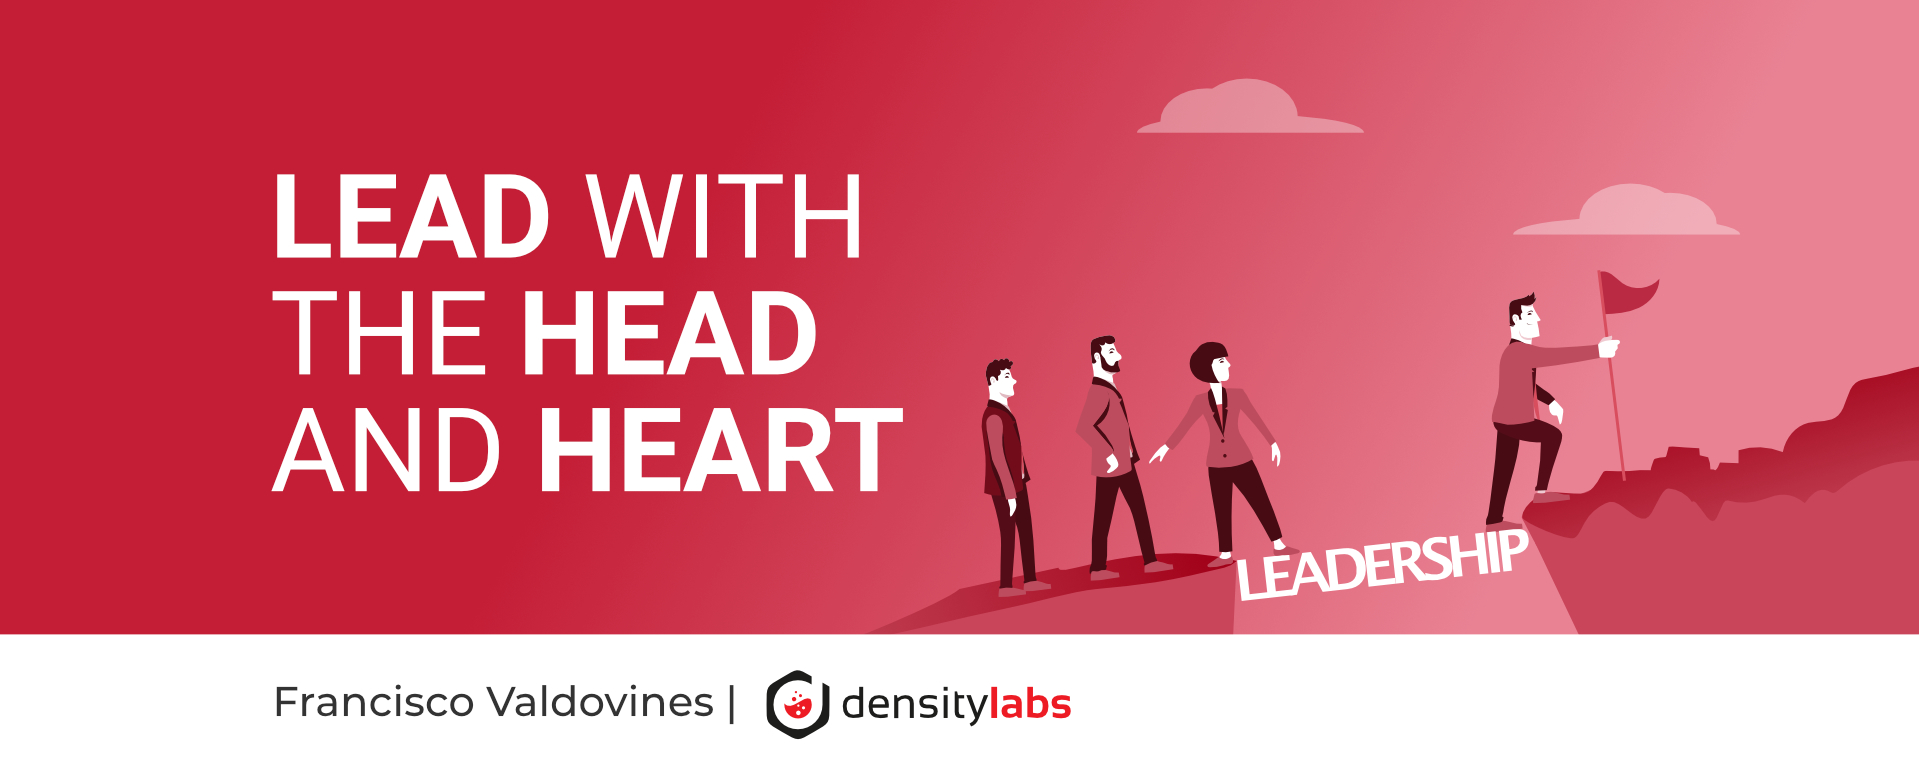 Lead With the Head and Heart